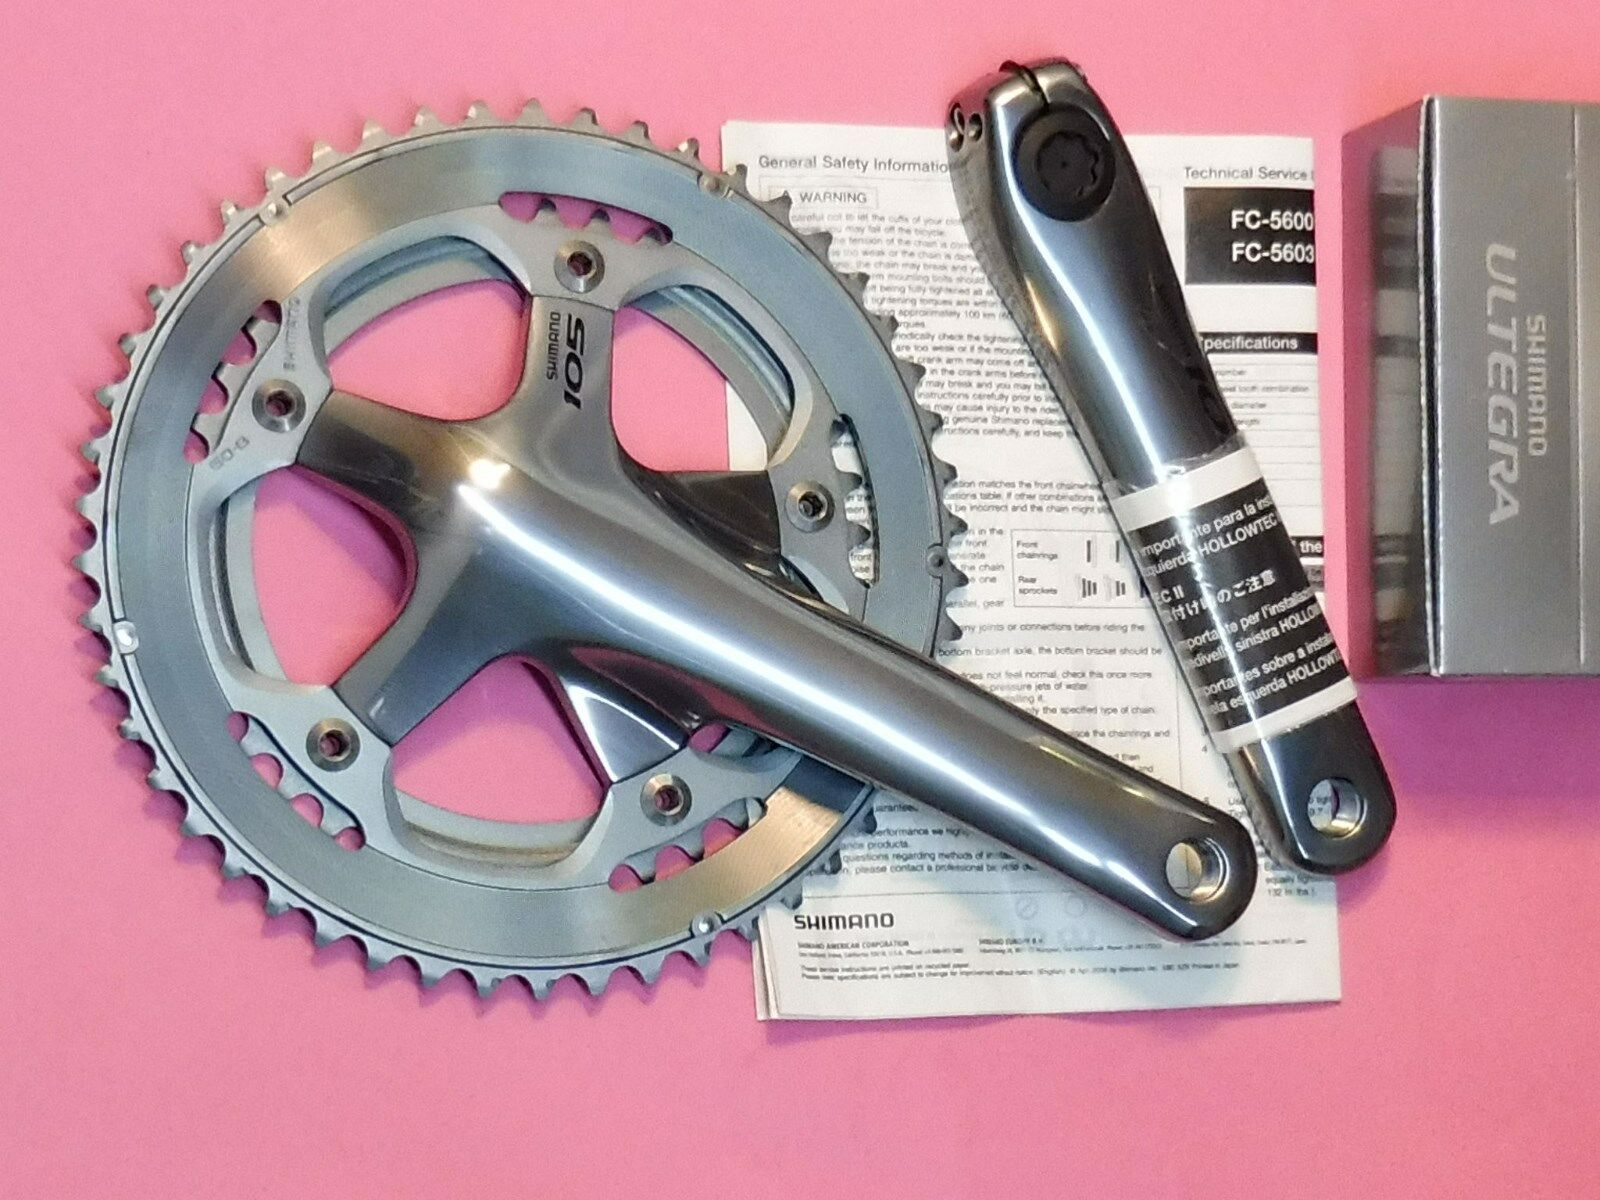 Shimano - 5600    10 Sp bicycle chainset 165 mm - 39.50   6600 bb cupset - NOS  discount low price